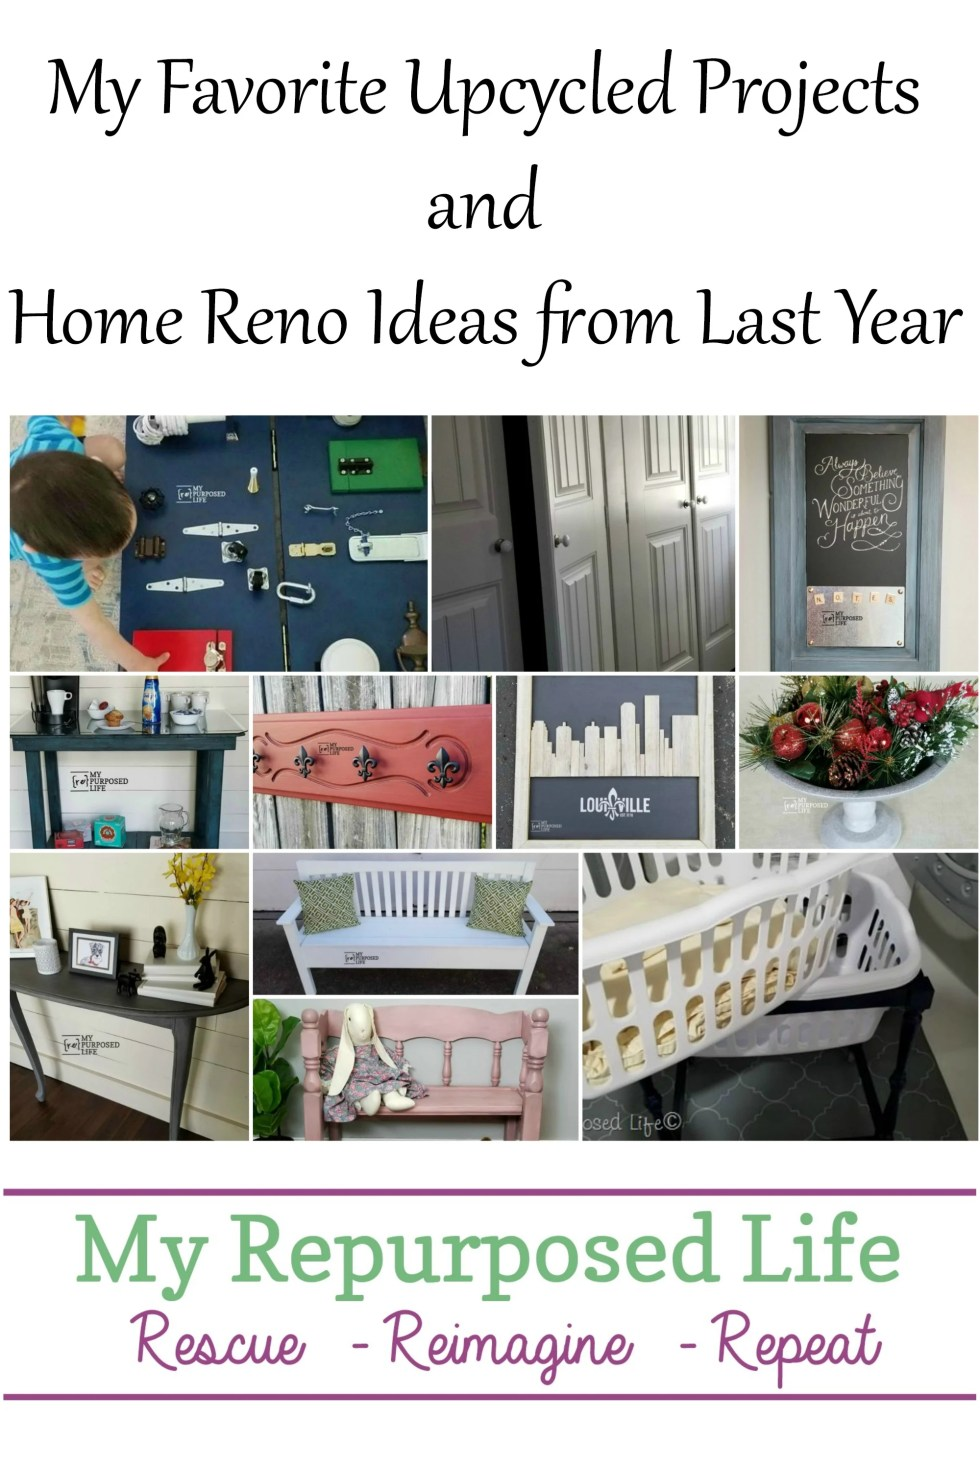 Looking back at favorite upcycled projects and home reno ideas. Whether you're a beginner or experienced, there's something for everyone. What will you make? #MyRepurposedLife #repurposed #upcycle #projects #homereno via @repurposedlife